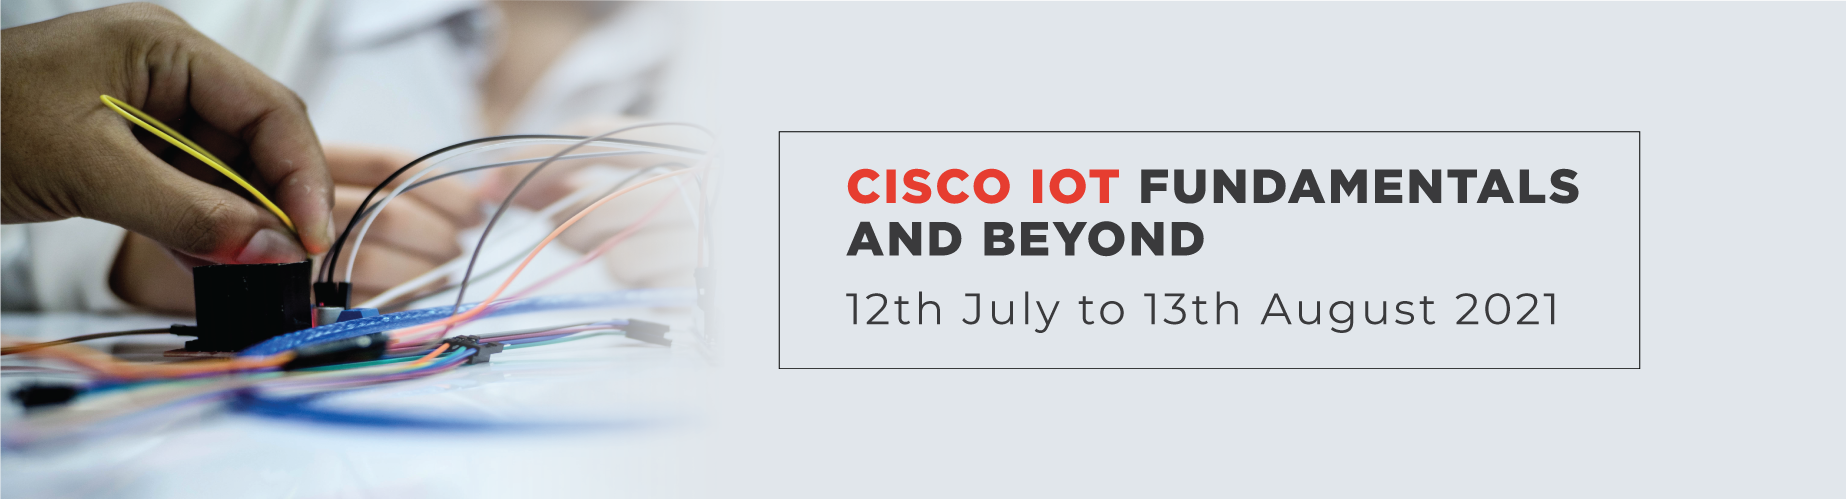 Cisco-IoT-12th July to 13th August 2021